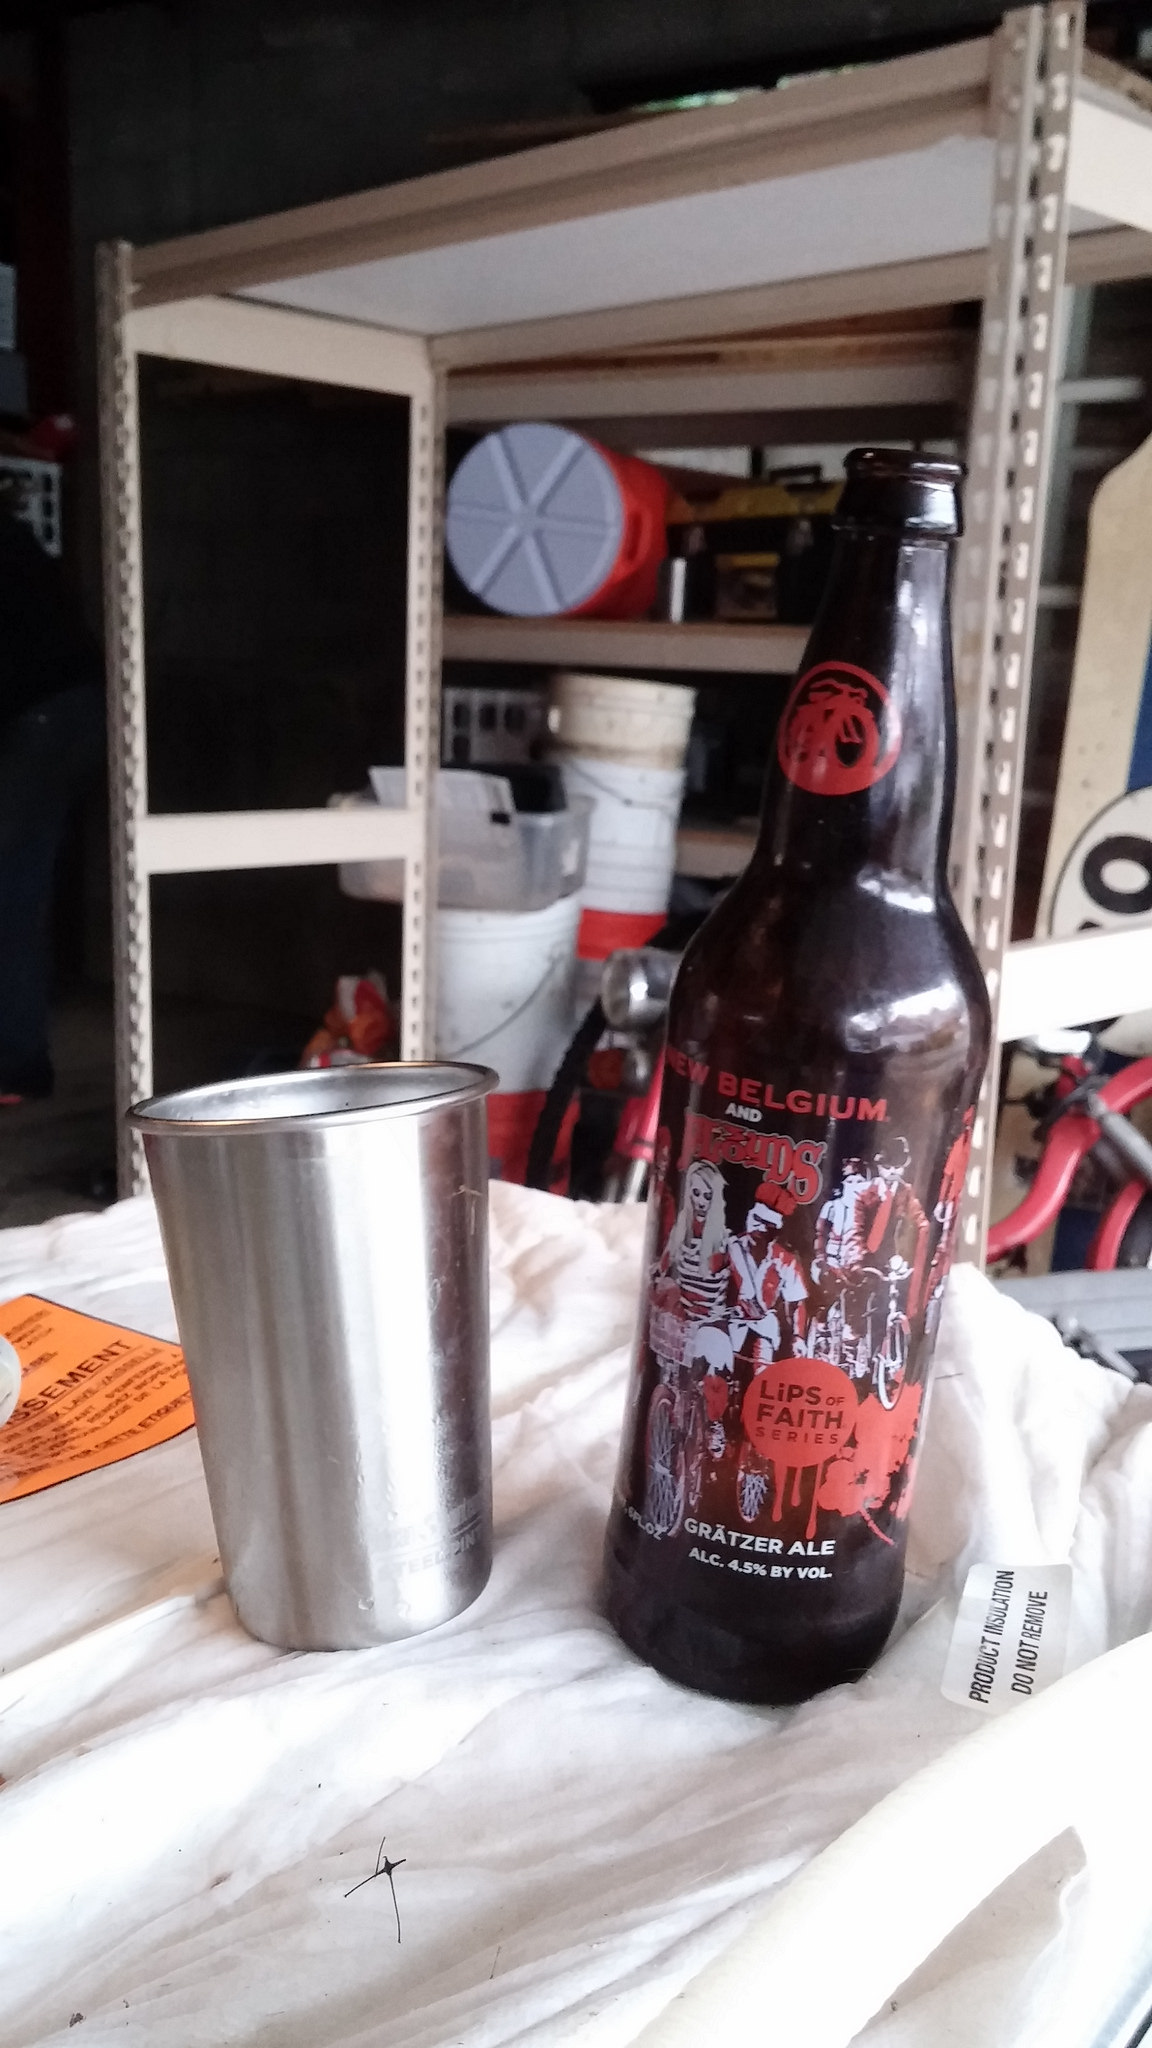 Working in the garage and drinking beer go really well together.